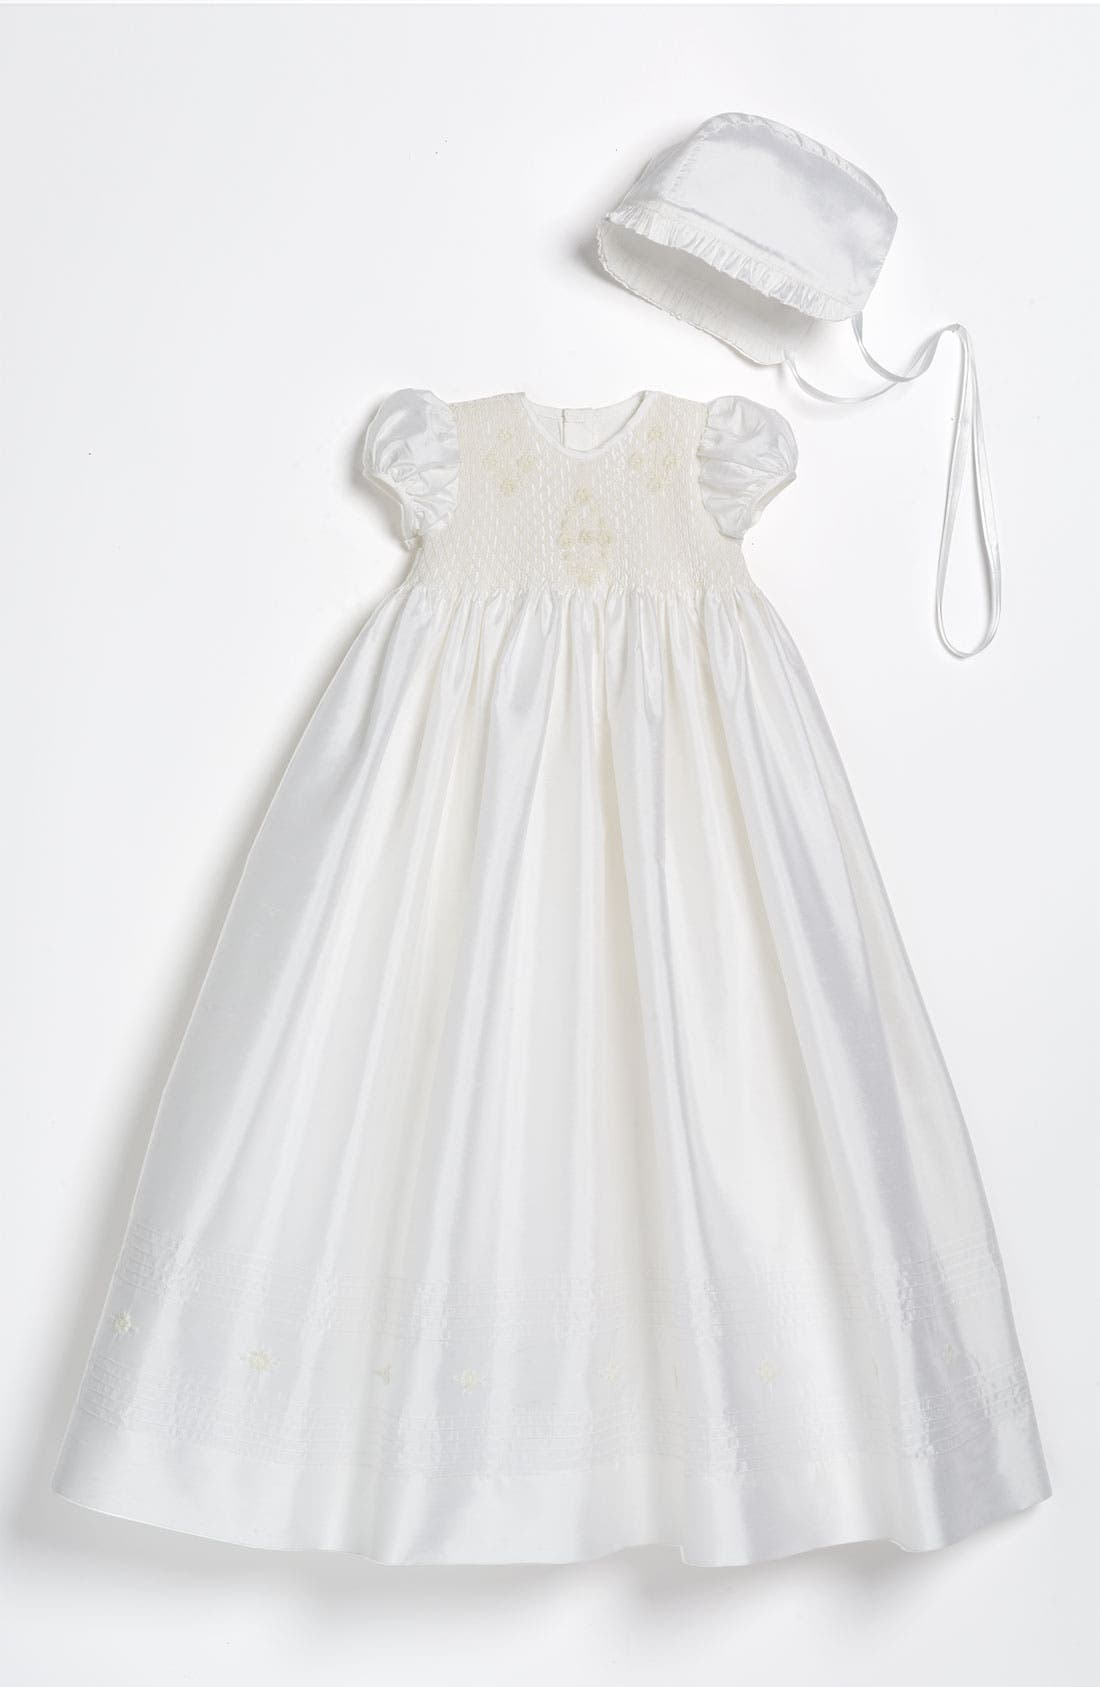 Main Image - Little Things Mean a Lot Silk Gown (Baby)